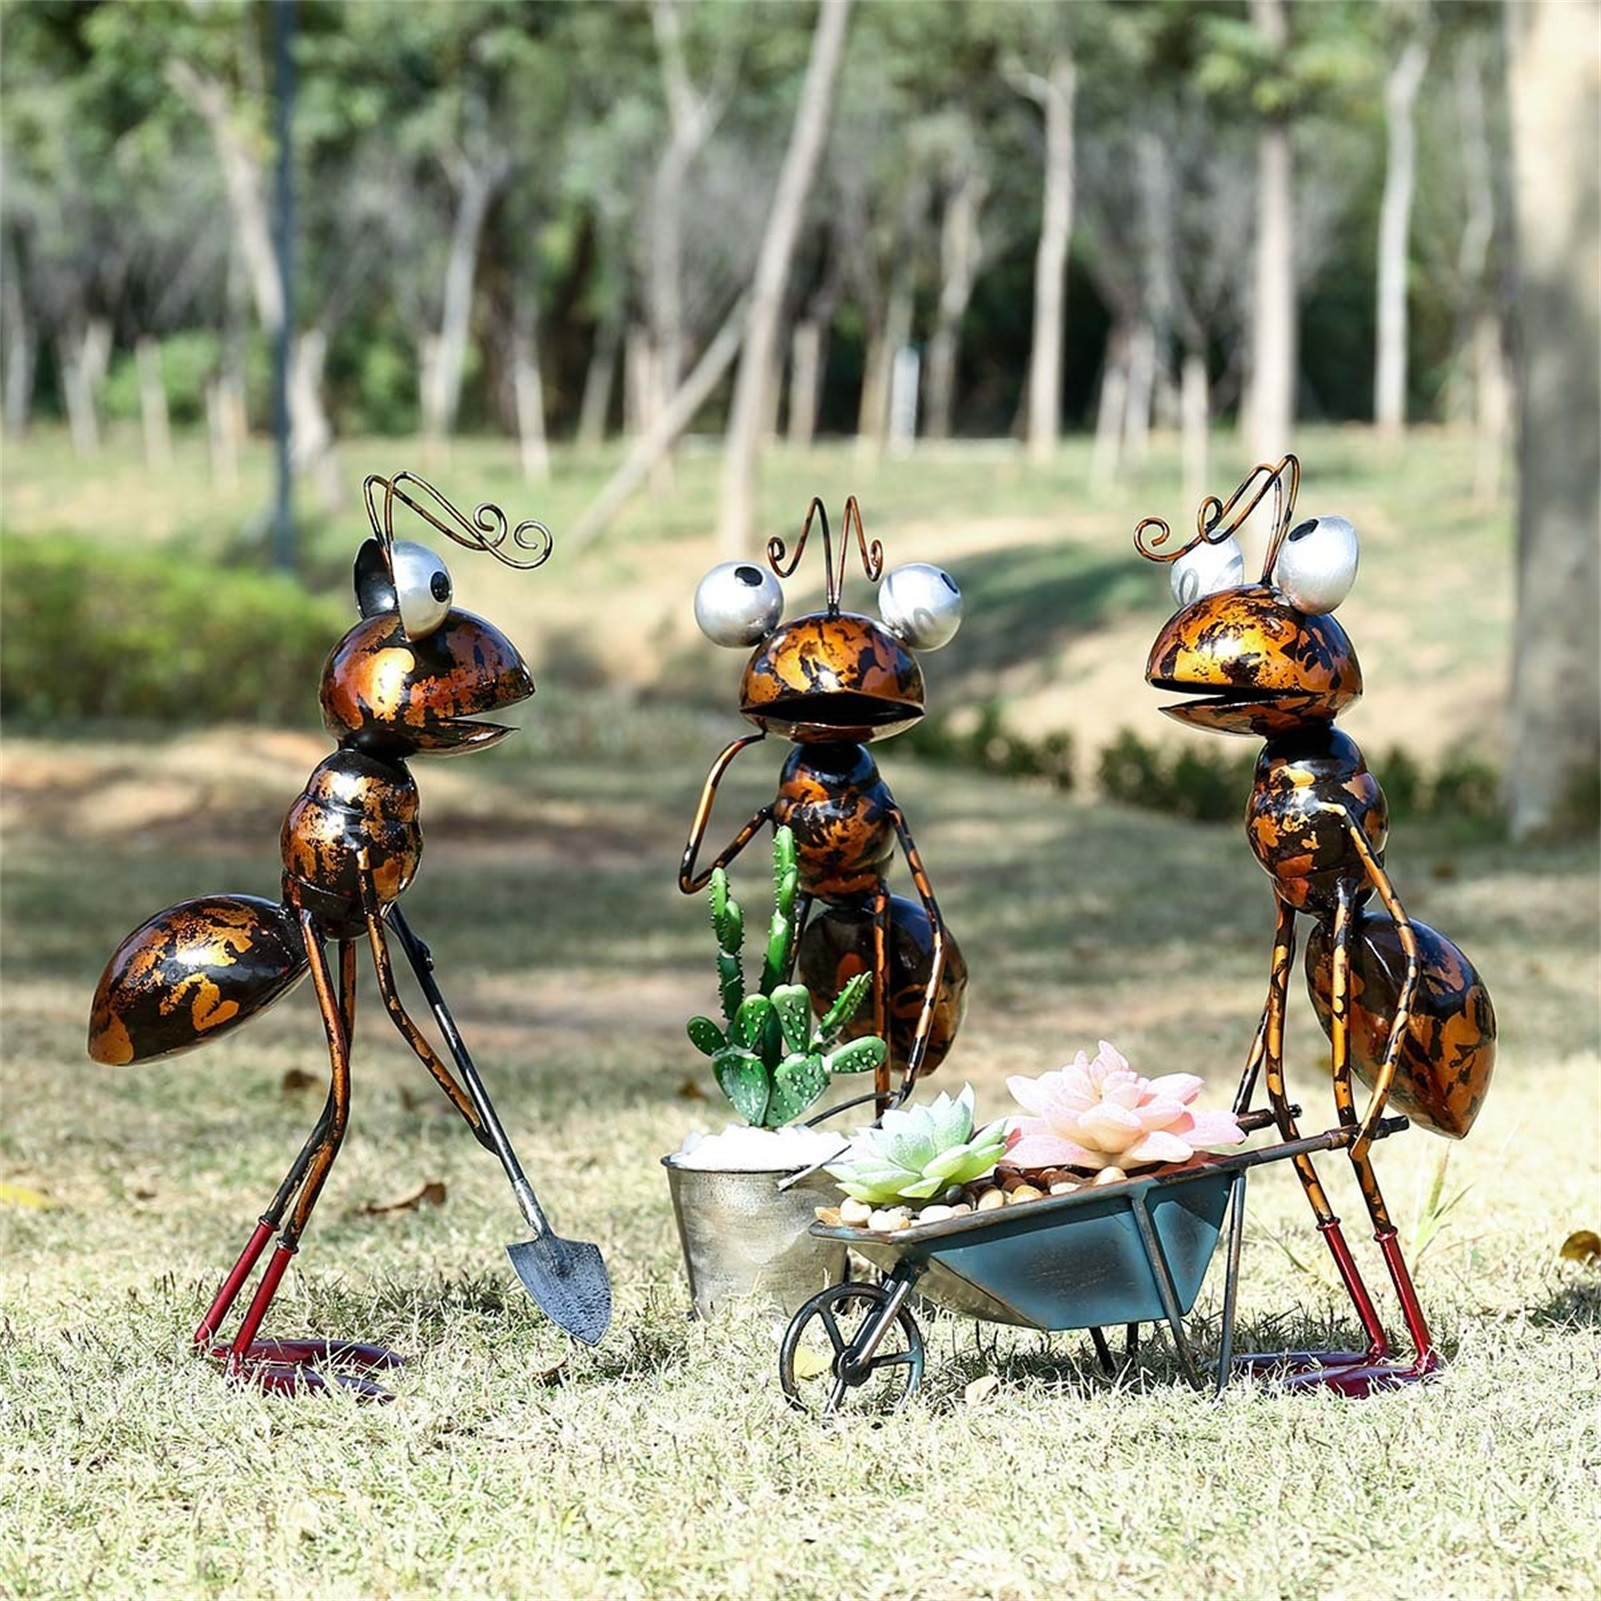 Metal Ant Garden Decor Sculpture Home Patio Lawn Yard Indoor Outdoor Statue Ornament With Removable Bucket